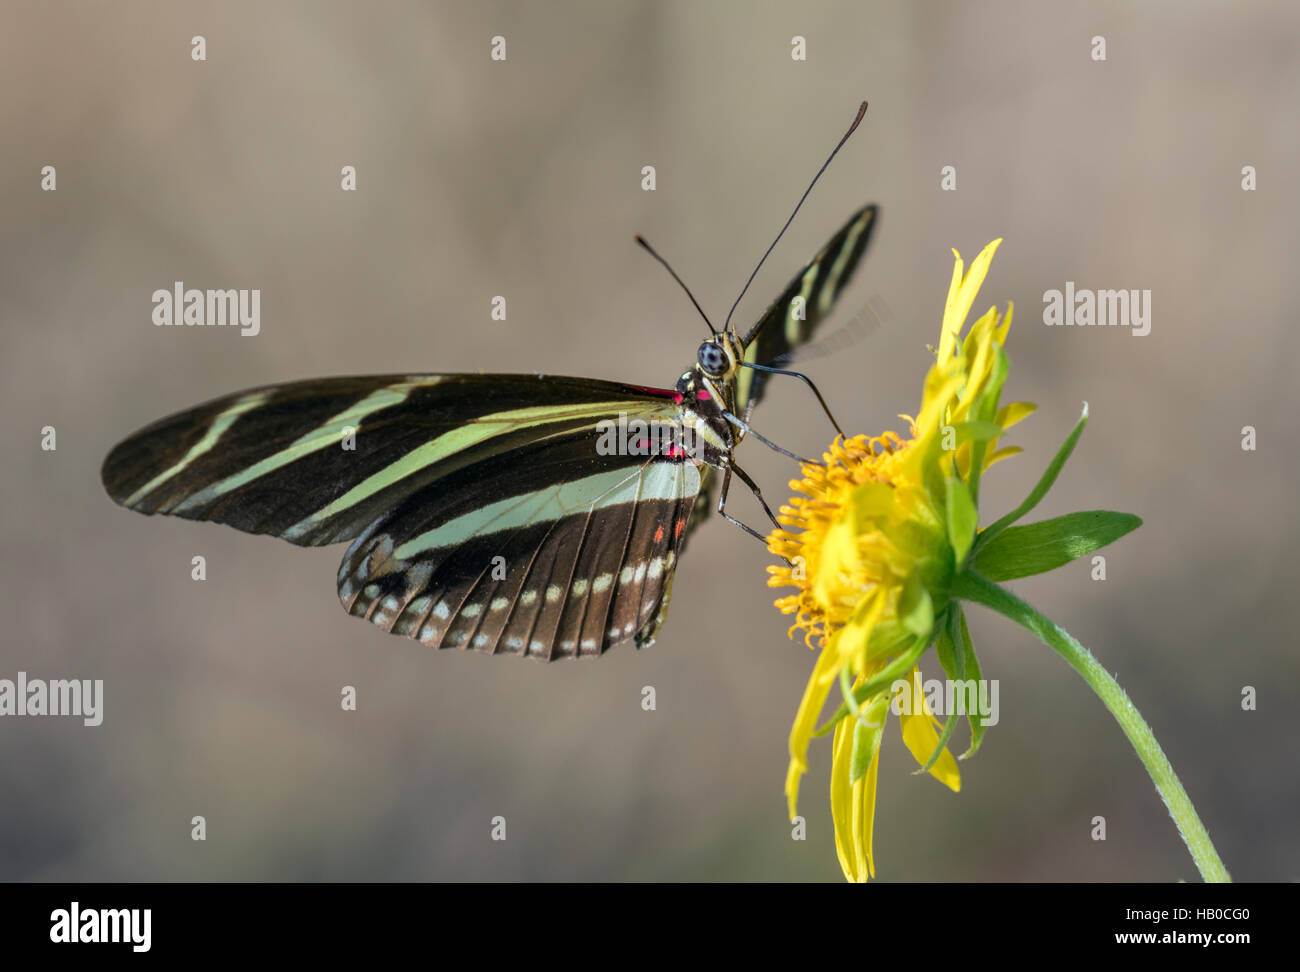 Zebra Longwing Butterfly (Heliconius charitonius) feeding in a sunny meadow, Aransas, Texas, USA - Stock Image